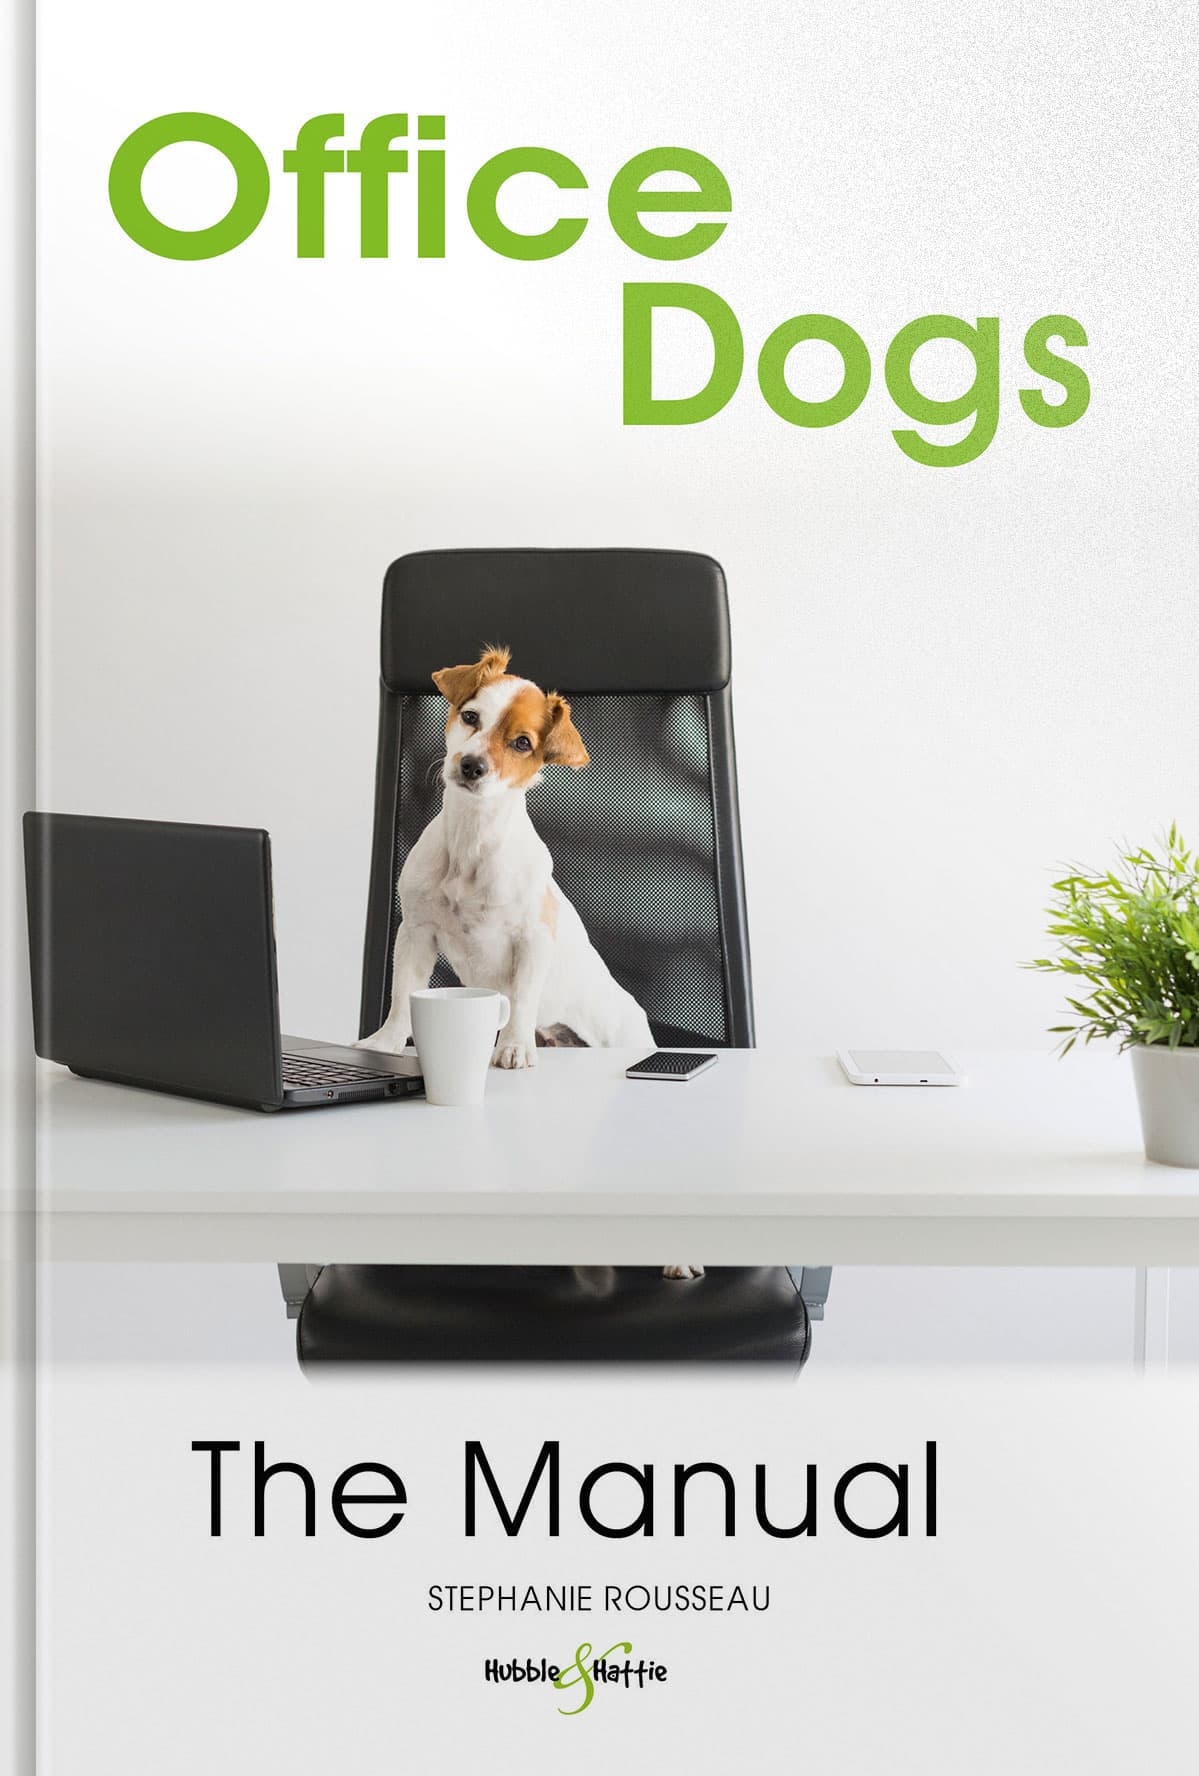 Office dogs –The Manual